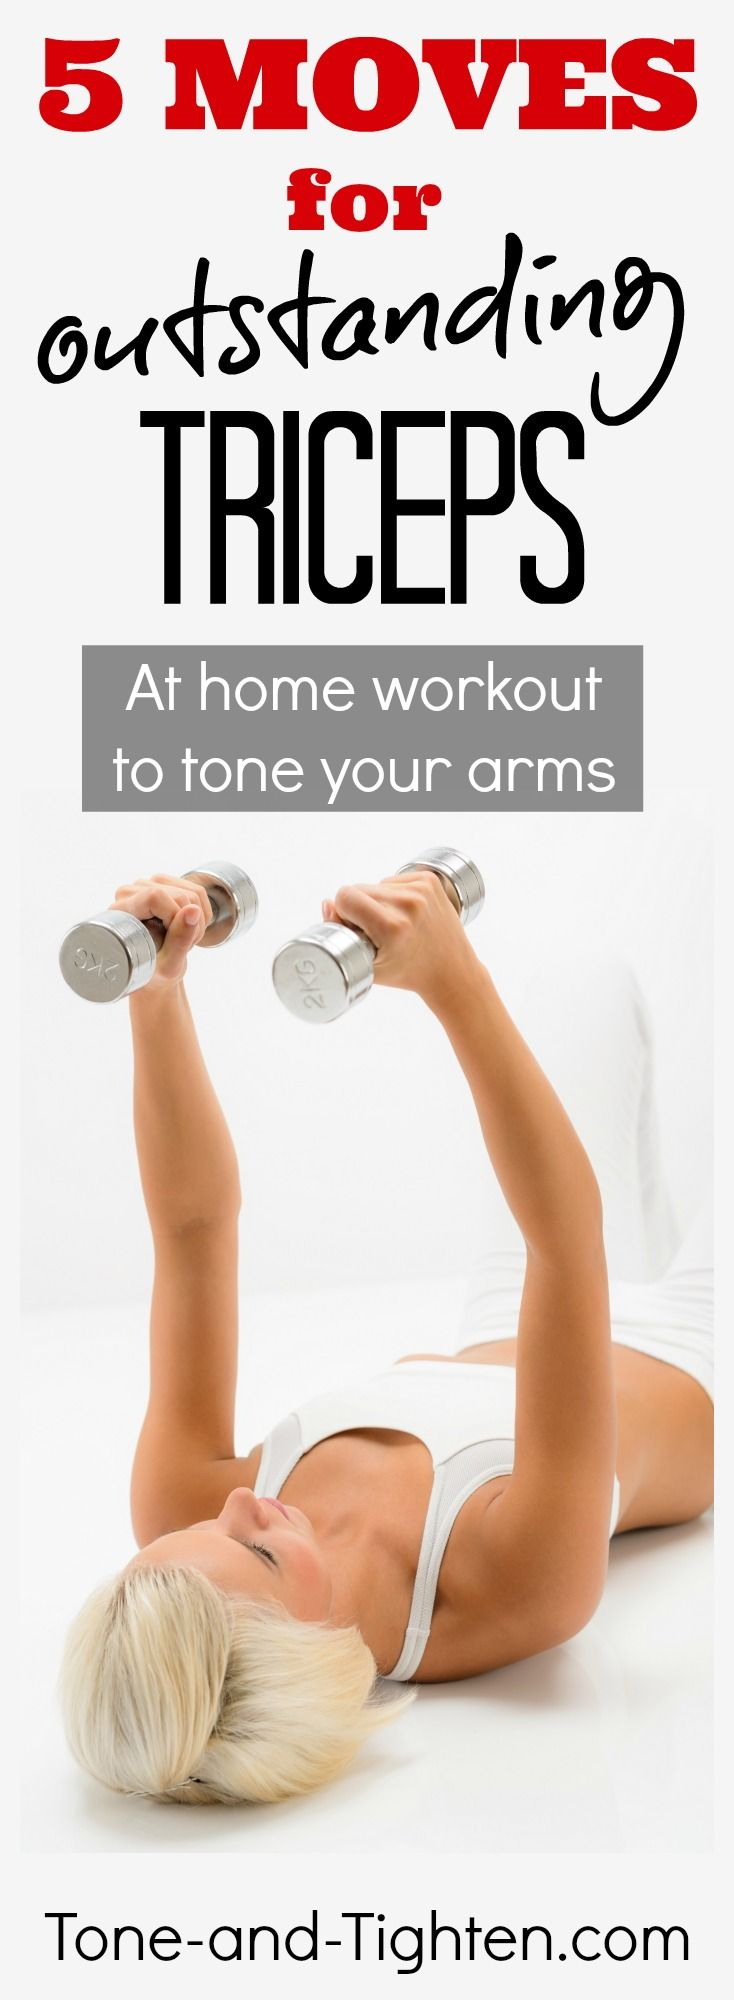 5 of the best exercises to tone your triceps (the muscle in the back of your arm). From Tone-and-Tighten.com